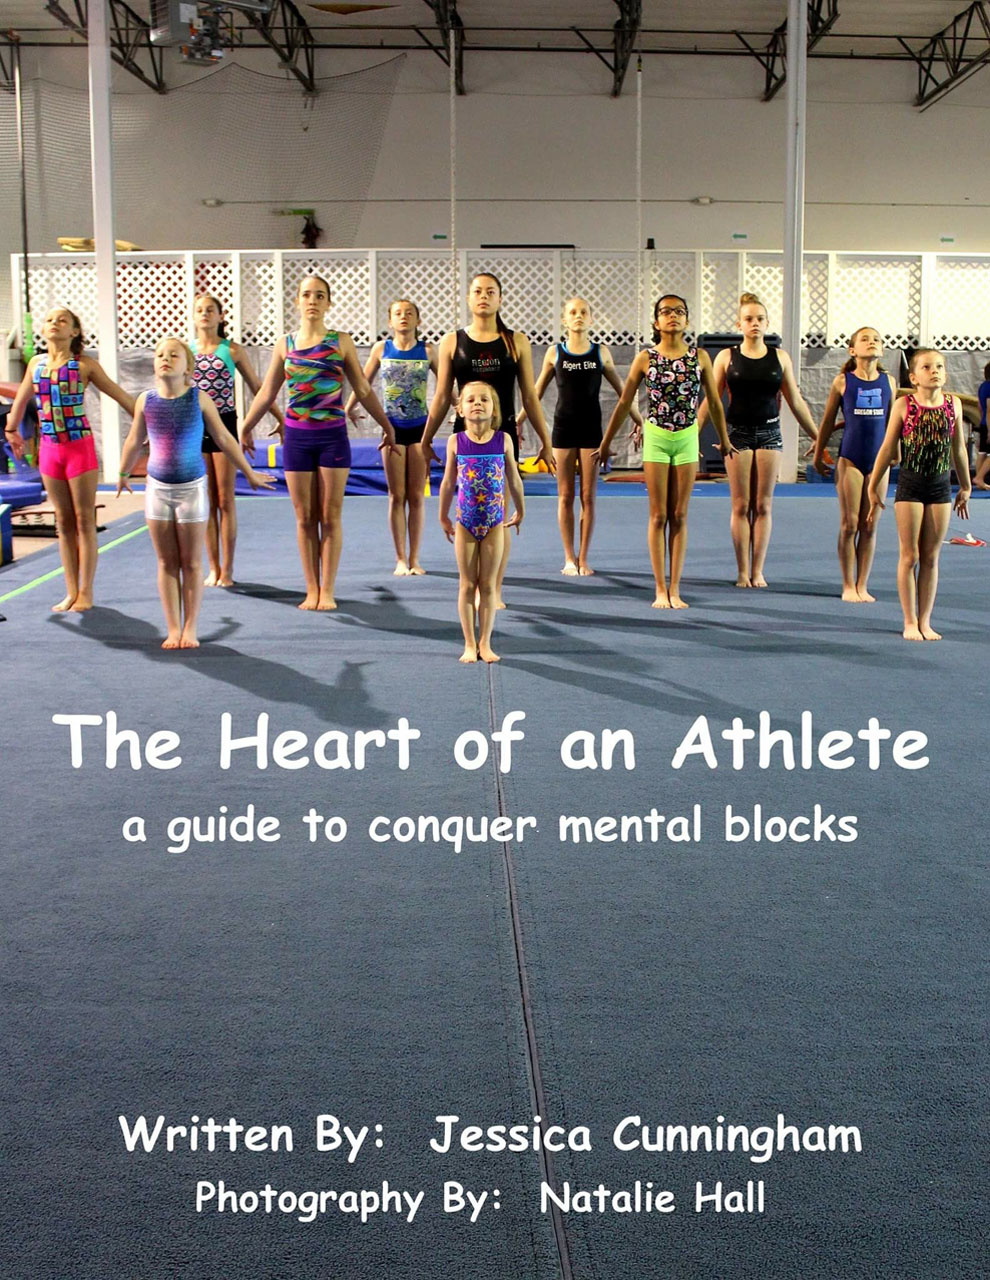 The book Heart of an Athlete Front Cover Image